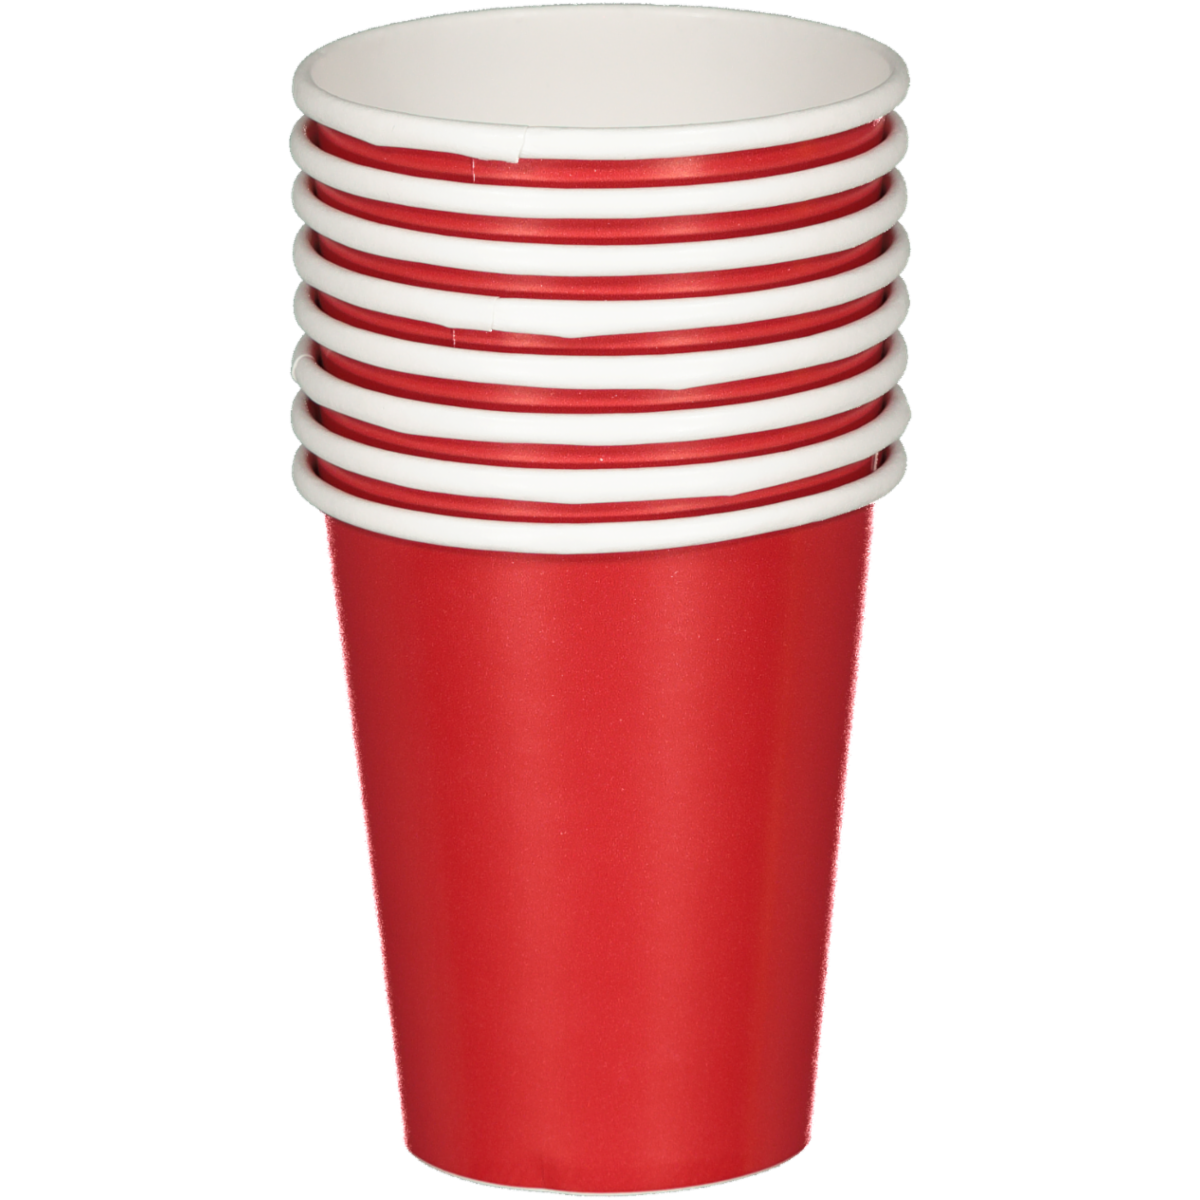 SOLID RED CUPS 8PCS